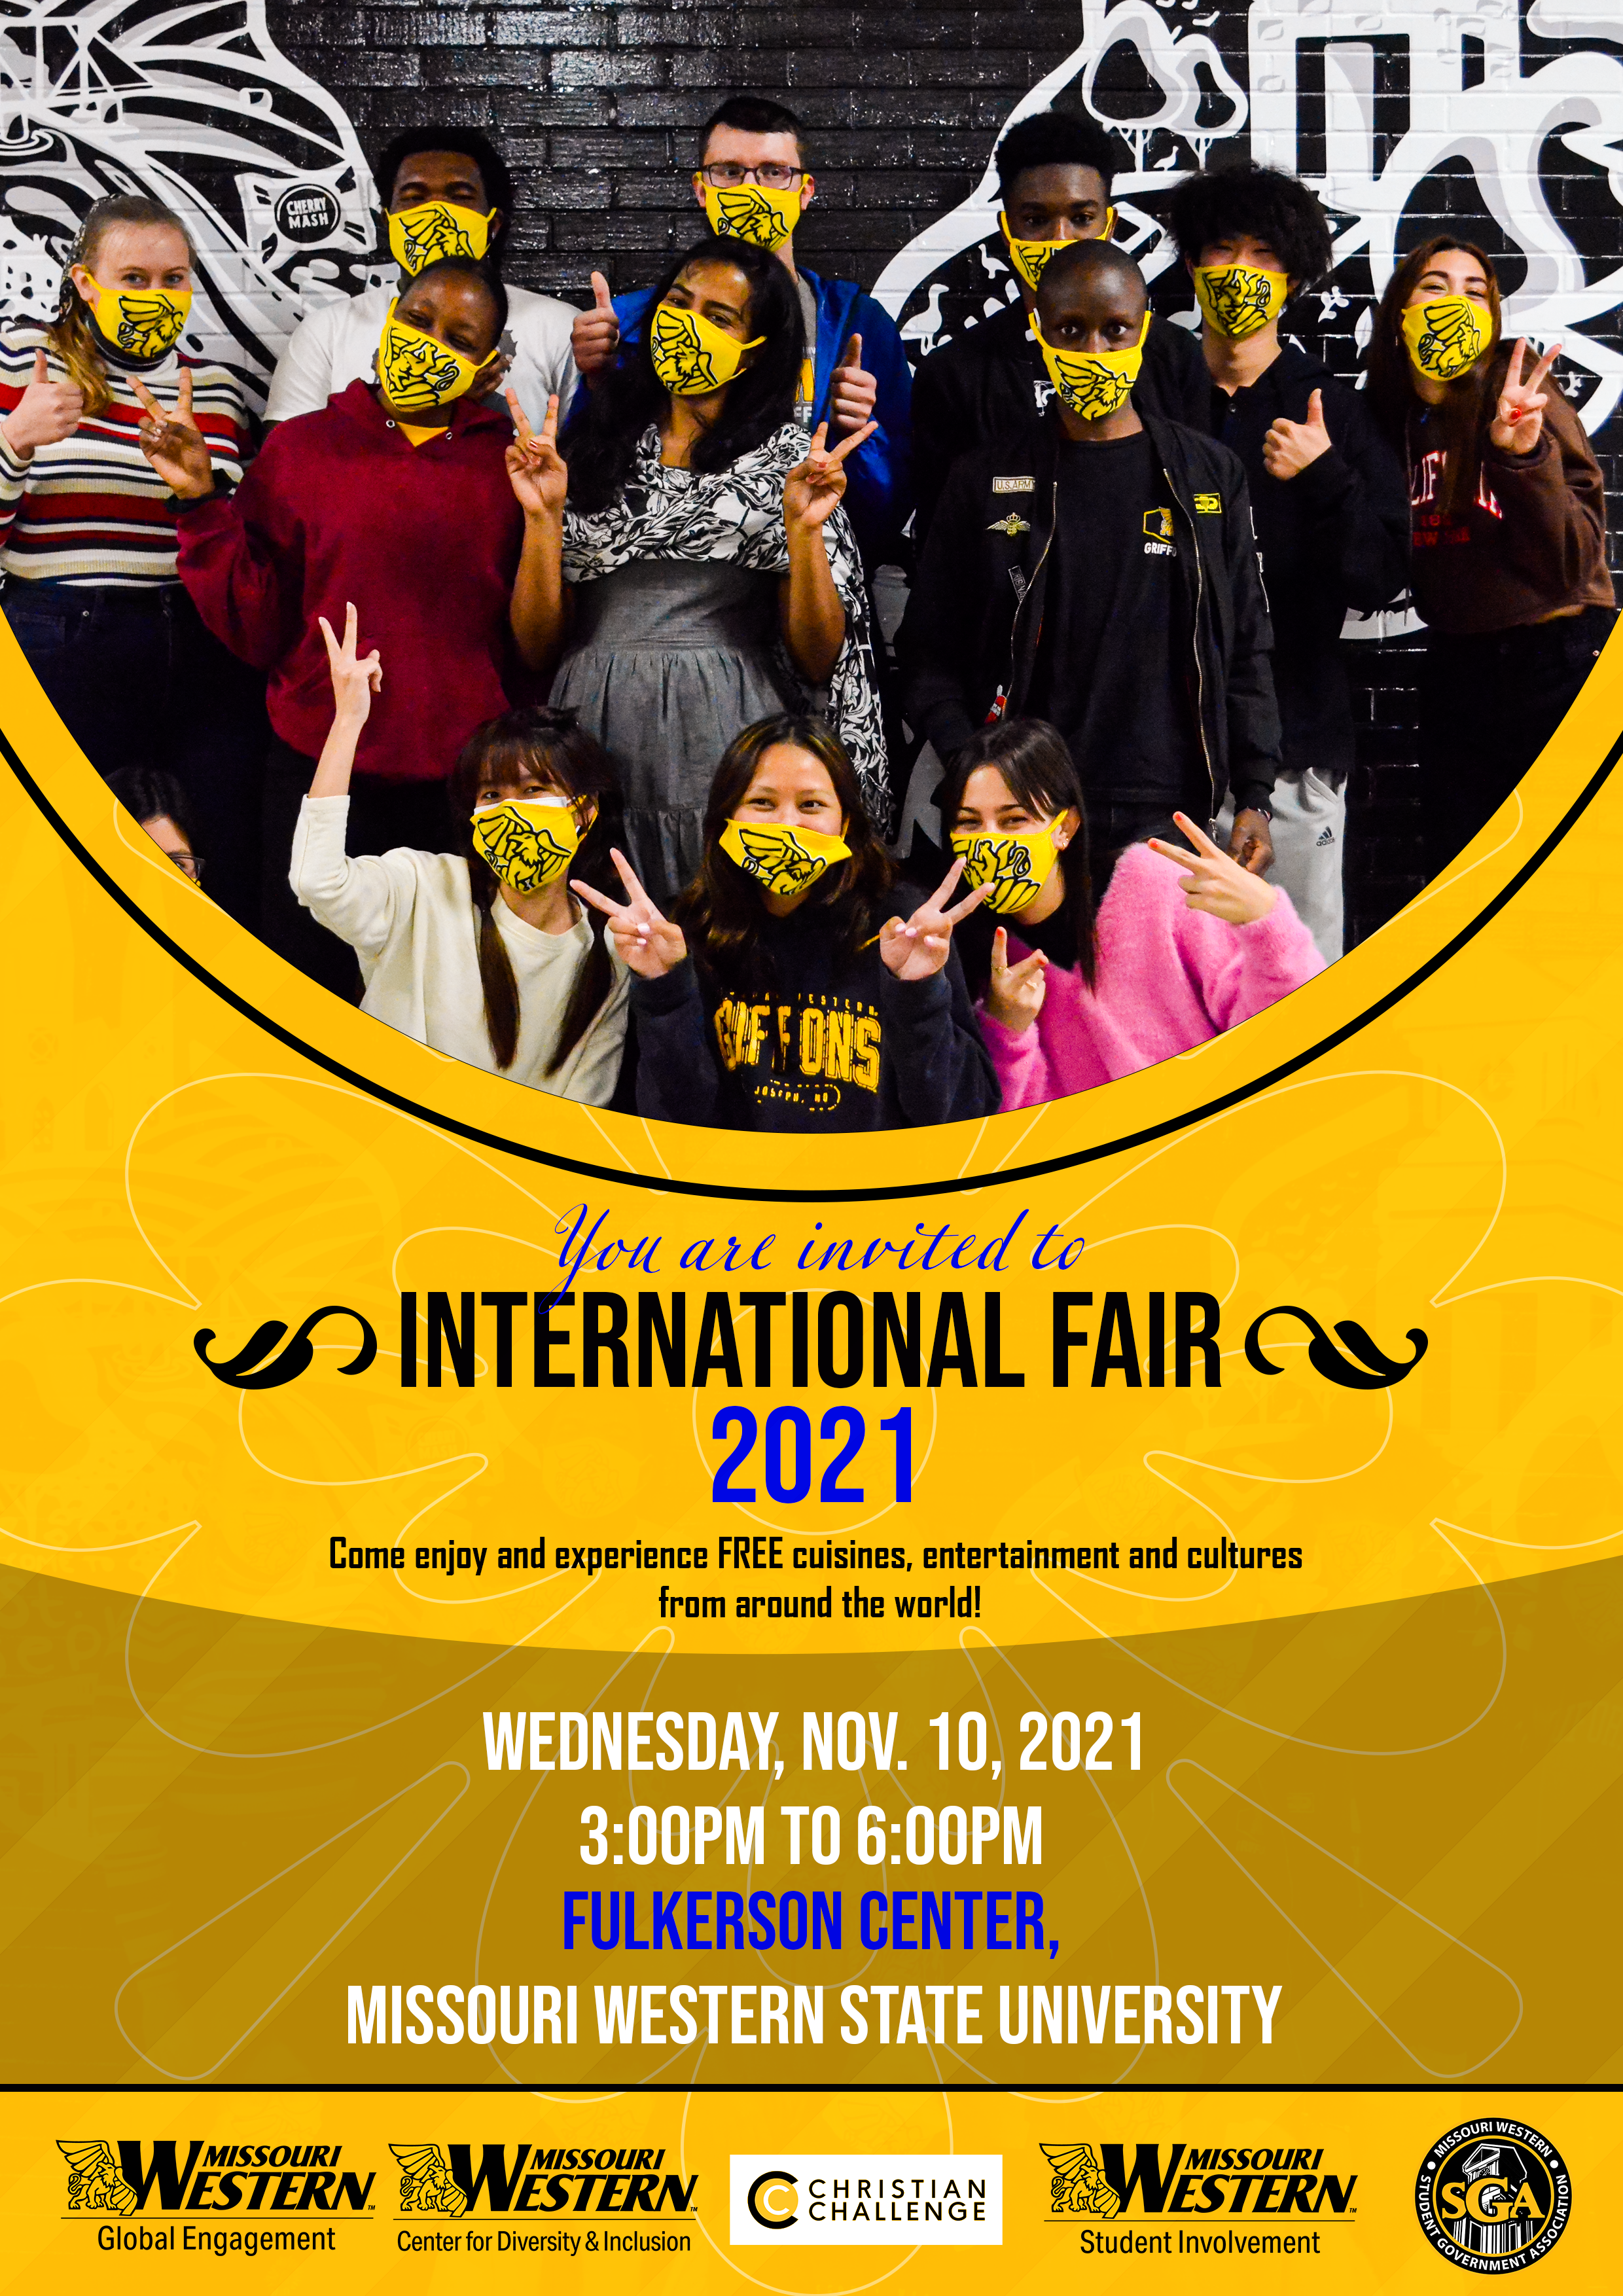 International fair flyer with a photo of students posing in front of a mural